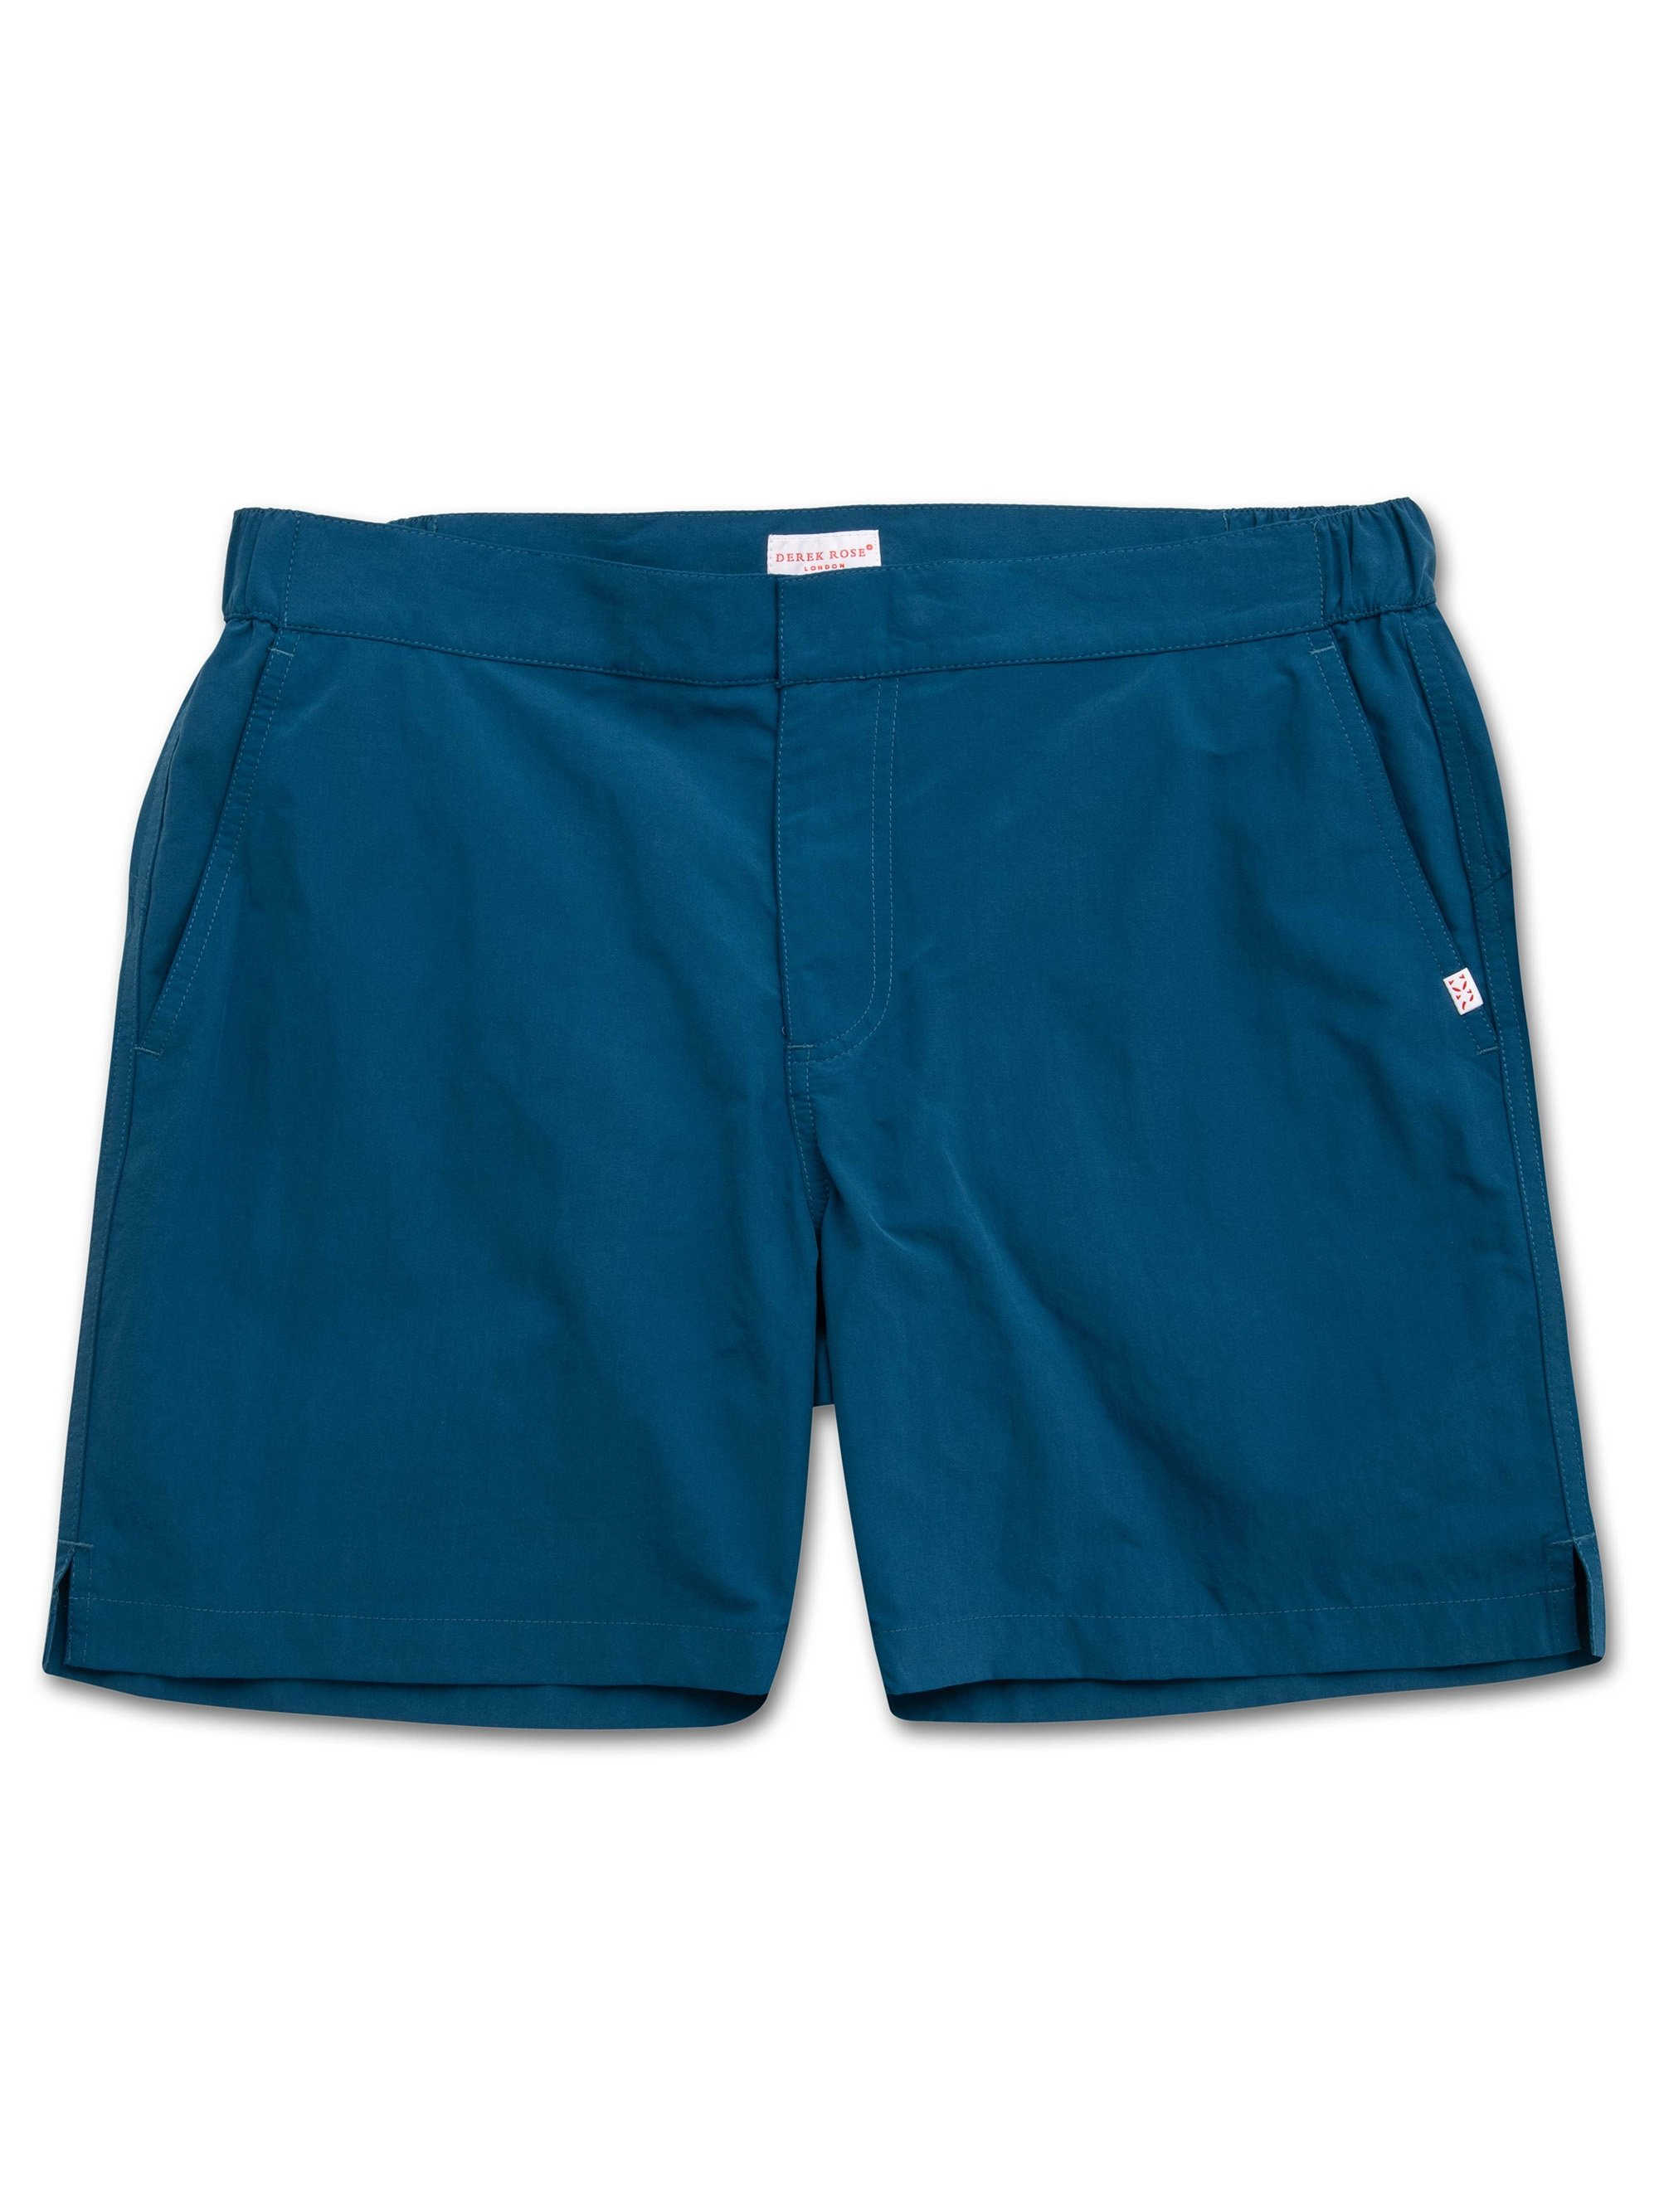 Men's Modern Fit Swim Shorts Aruba Ocean